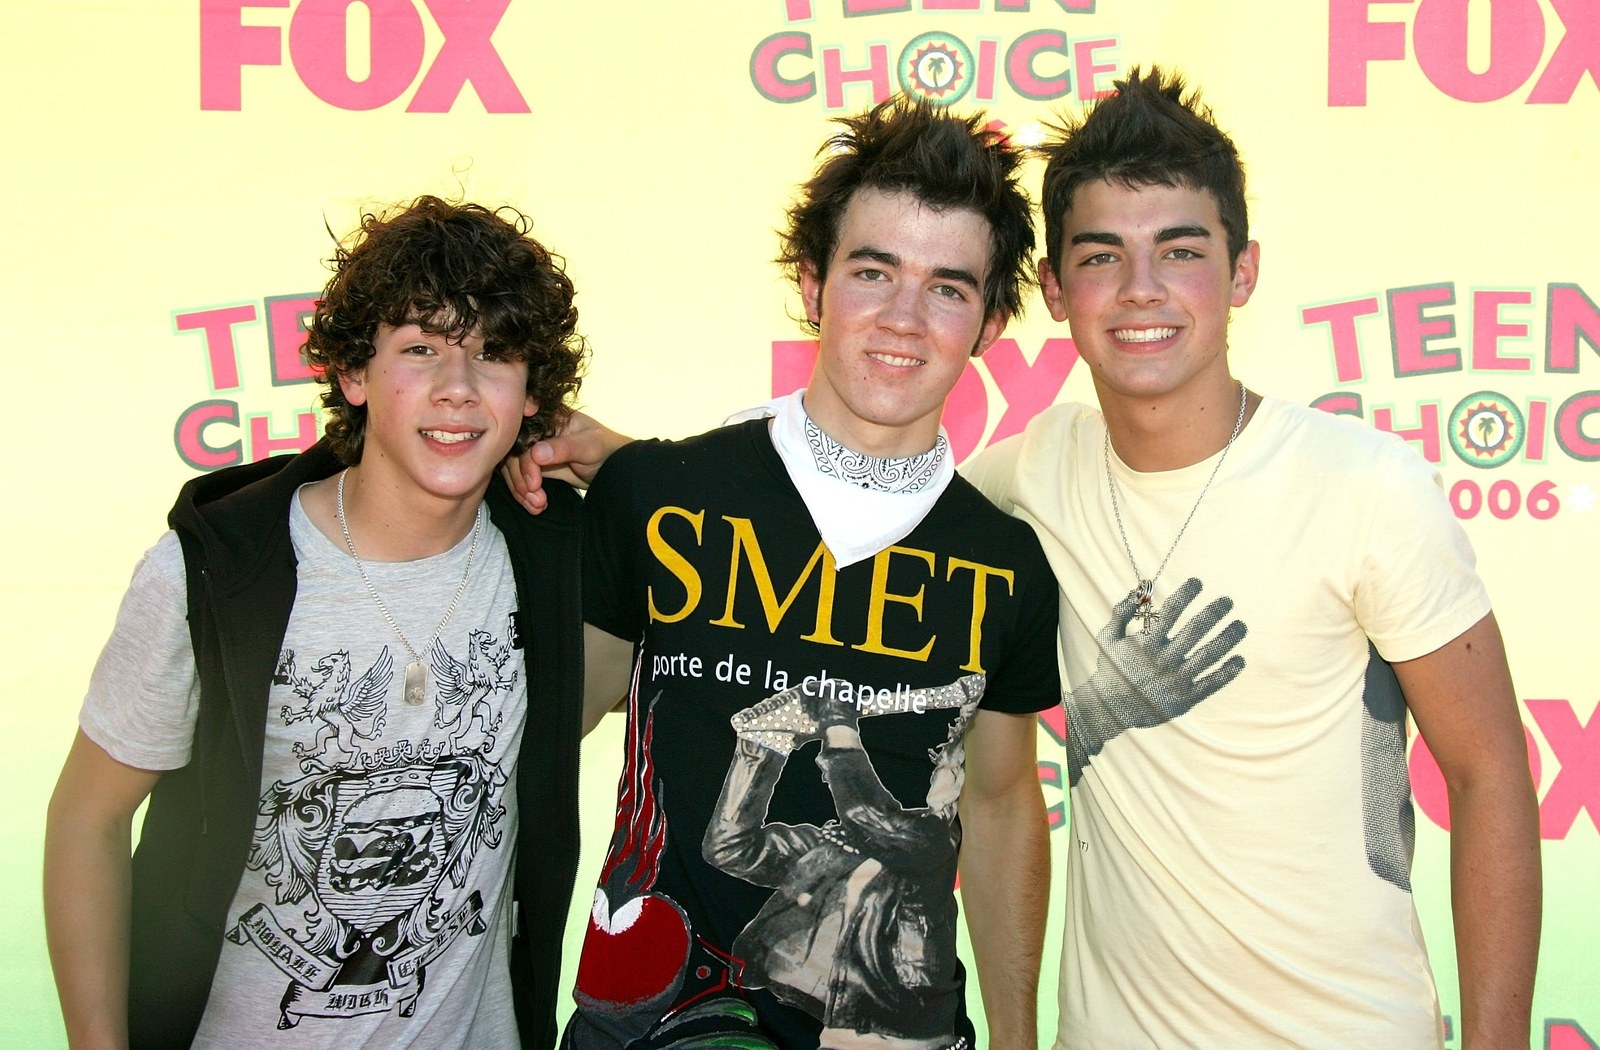 17 Iconic Jonas Brothers Fashion Moments You Definitely Forgot About